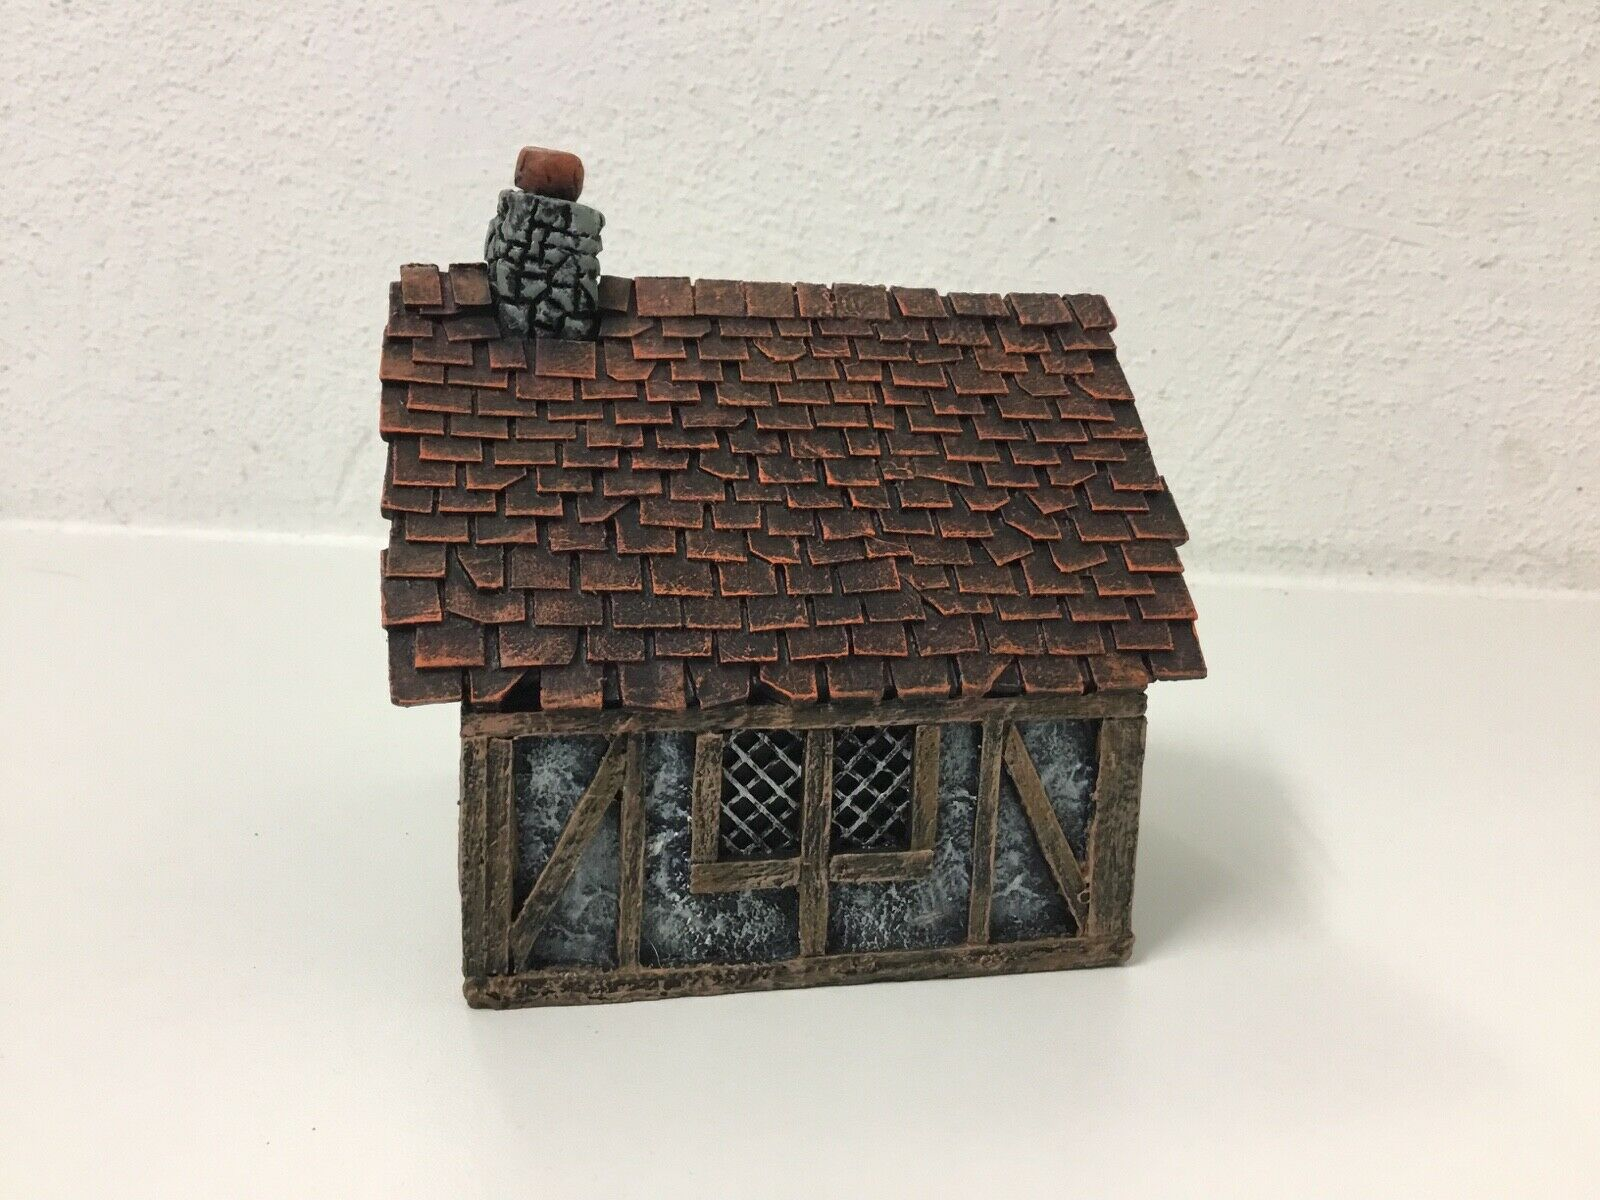 Conflix Taverne village tavern 28mm scenery Wargaming Diorama EM6804 108398